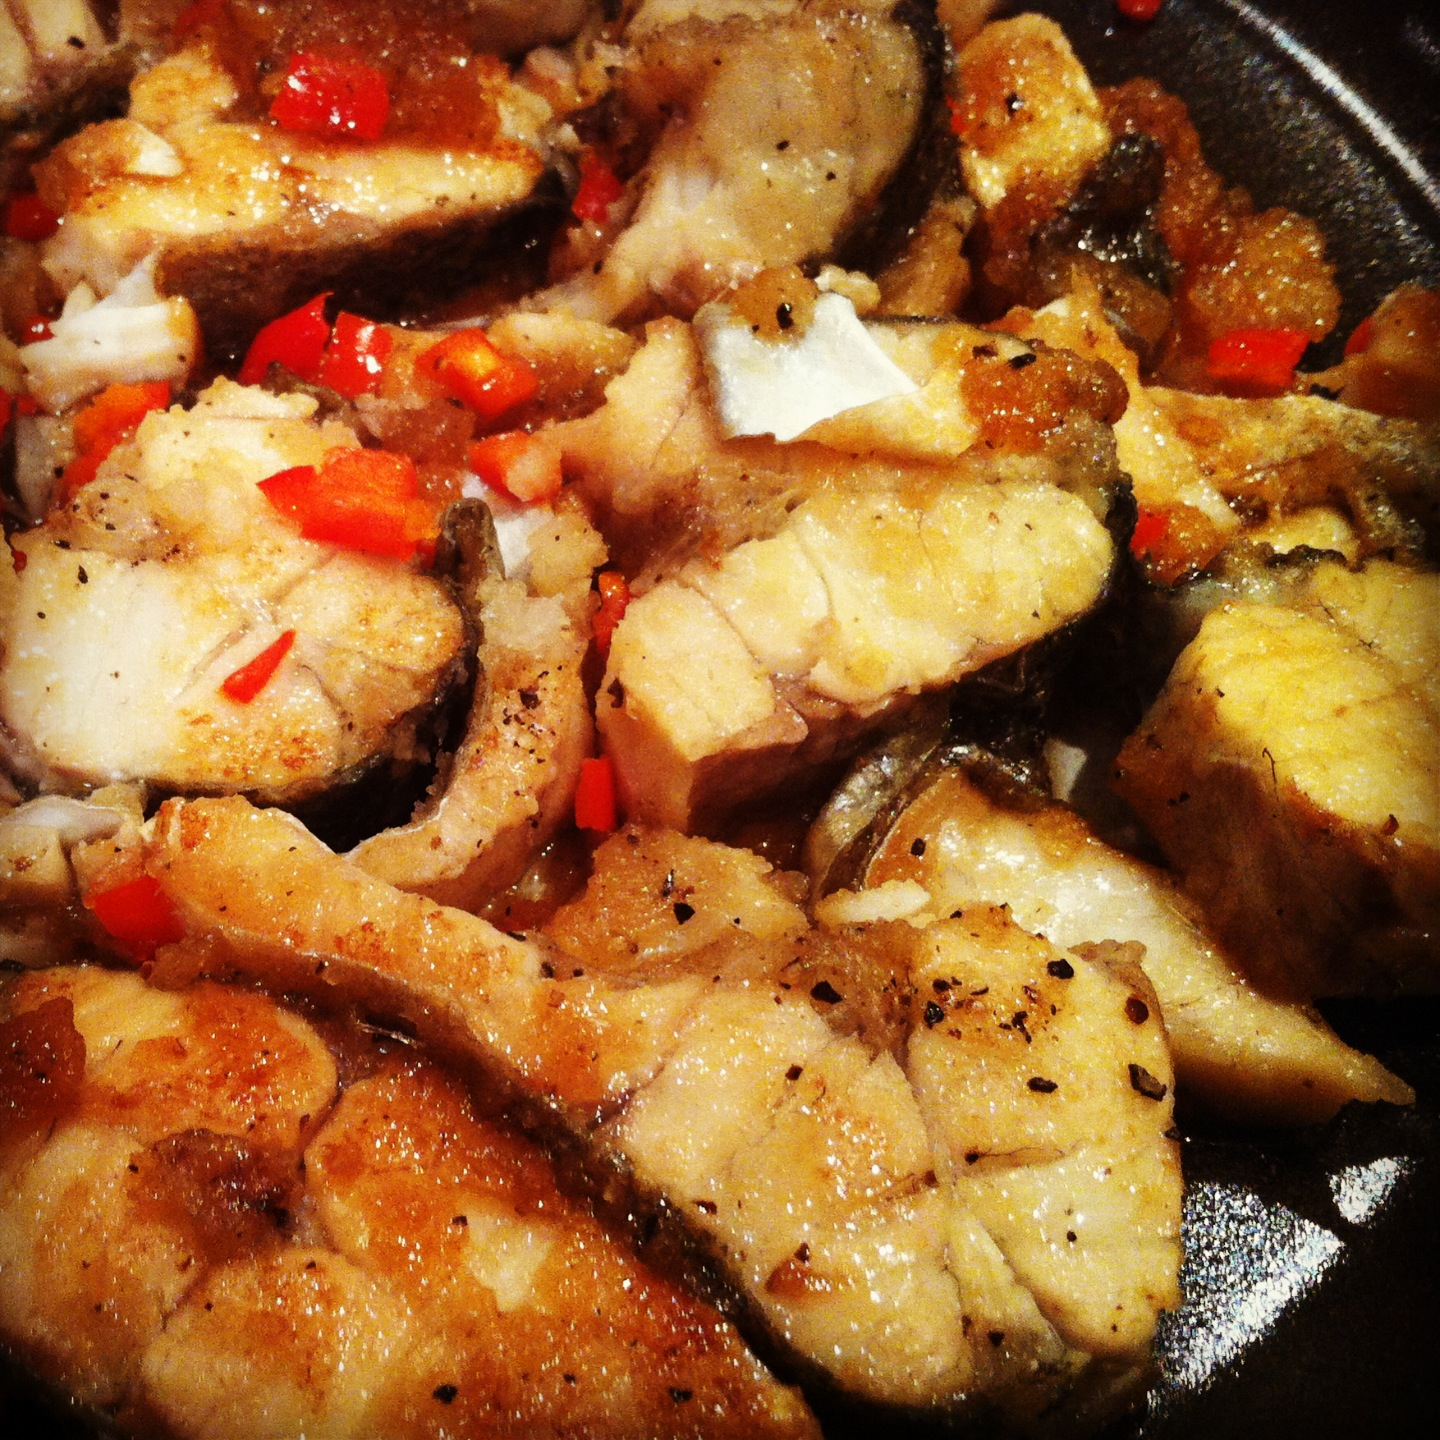 Vietnamese caramelized fish stir fry